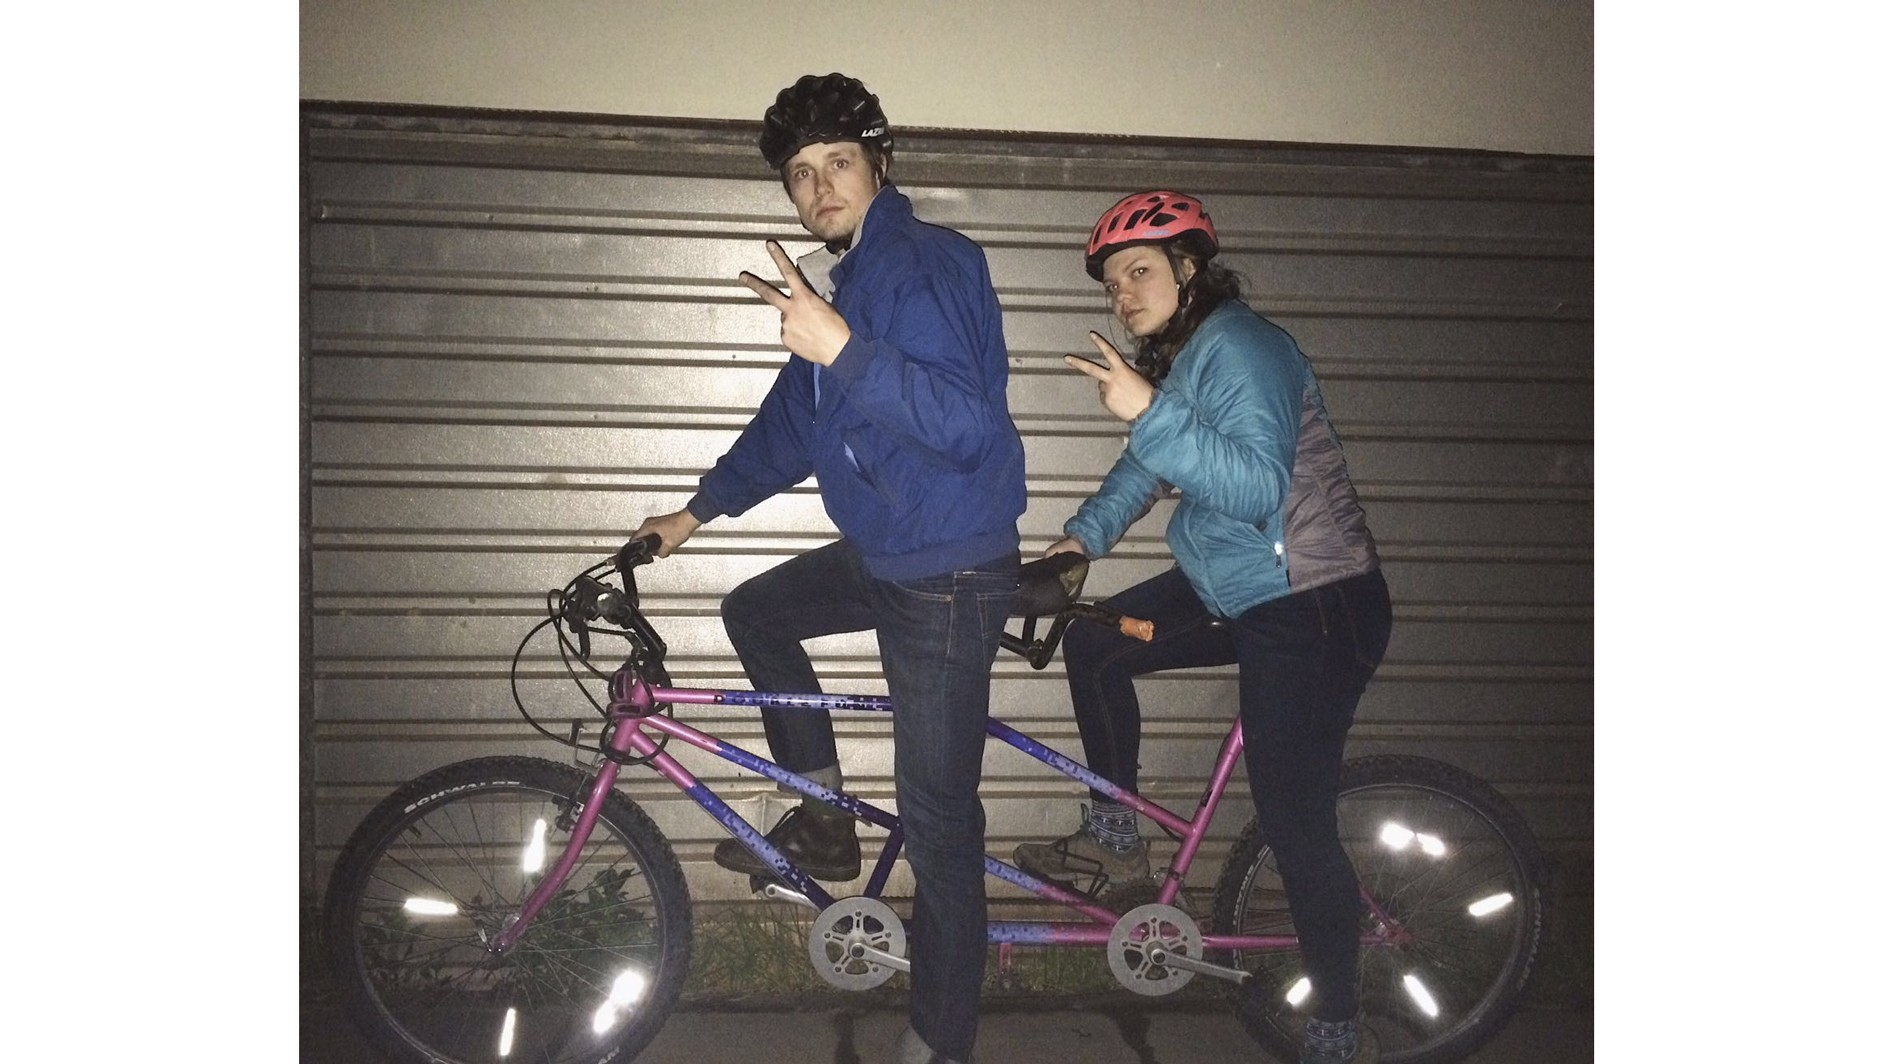 Our first tandem was possibly the worst bike I've ever ridden, but still so much fun